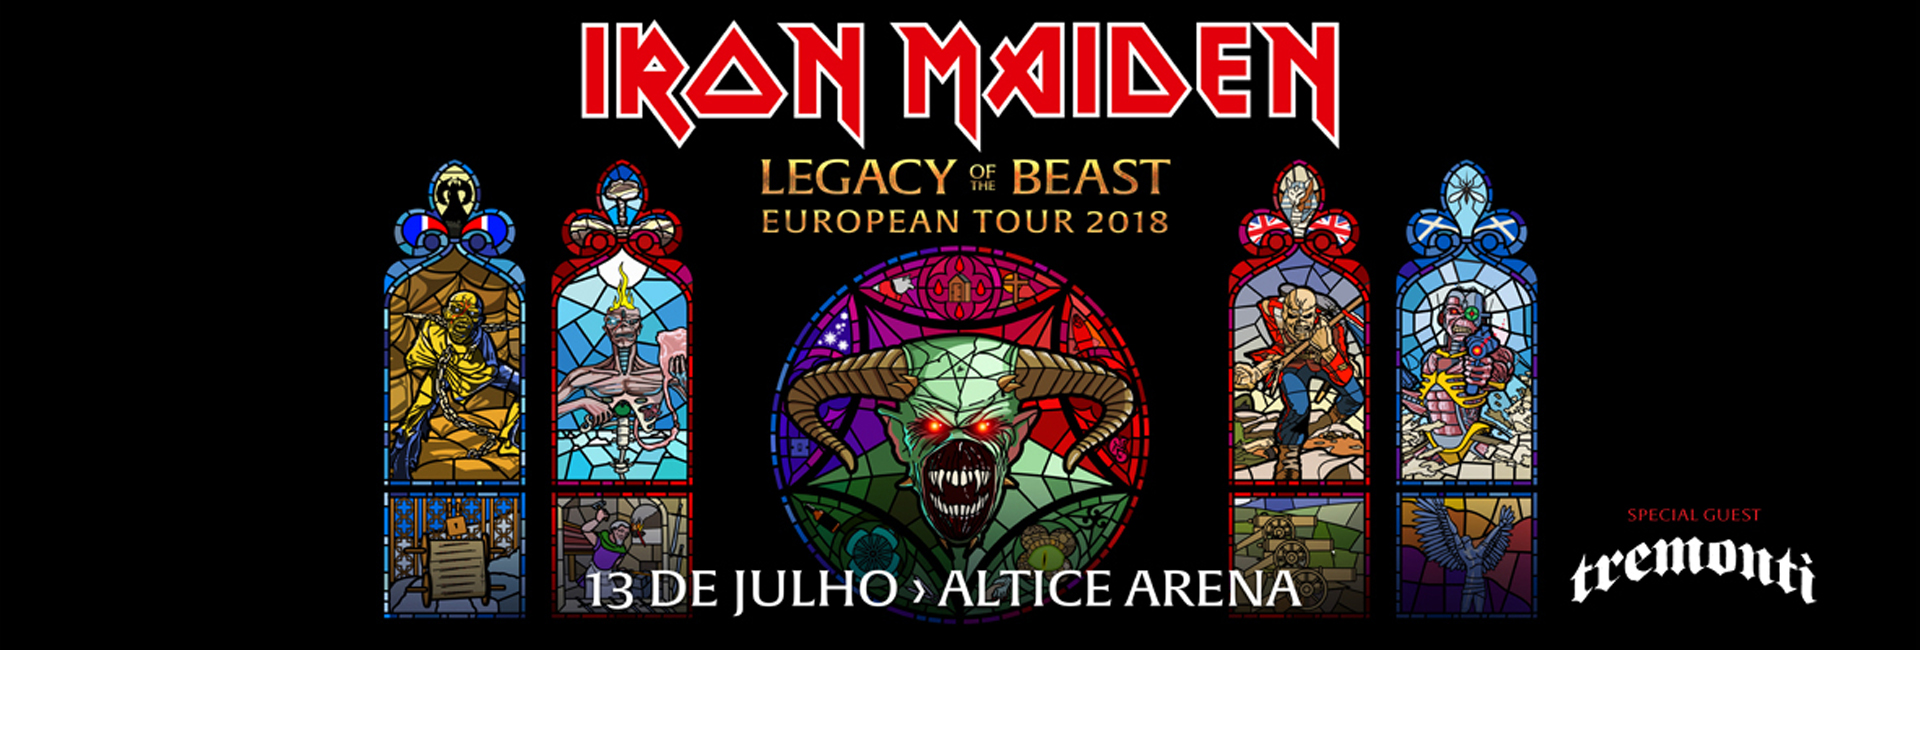 IRON MAIDEN Lisboa